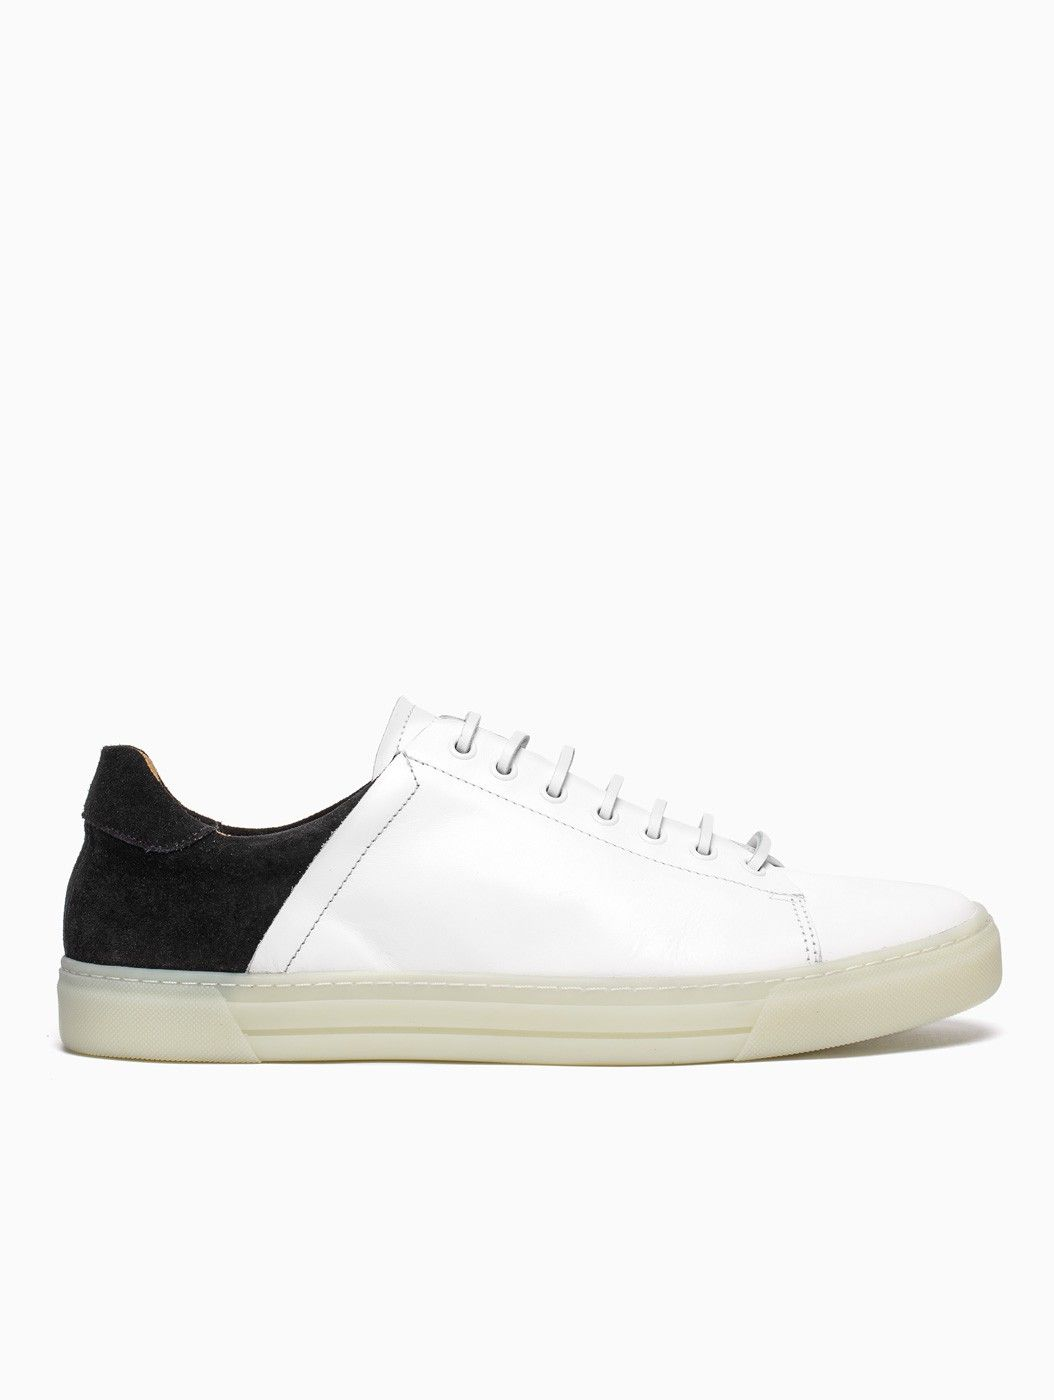 DAMIR DOMA Low top sneakers gKHBhrXHq